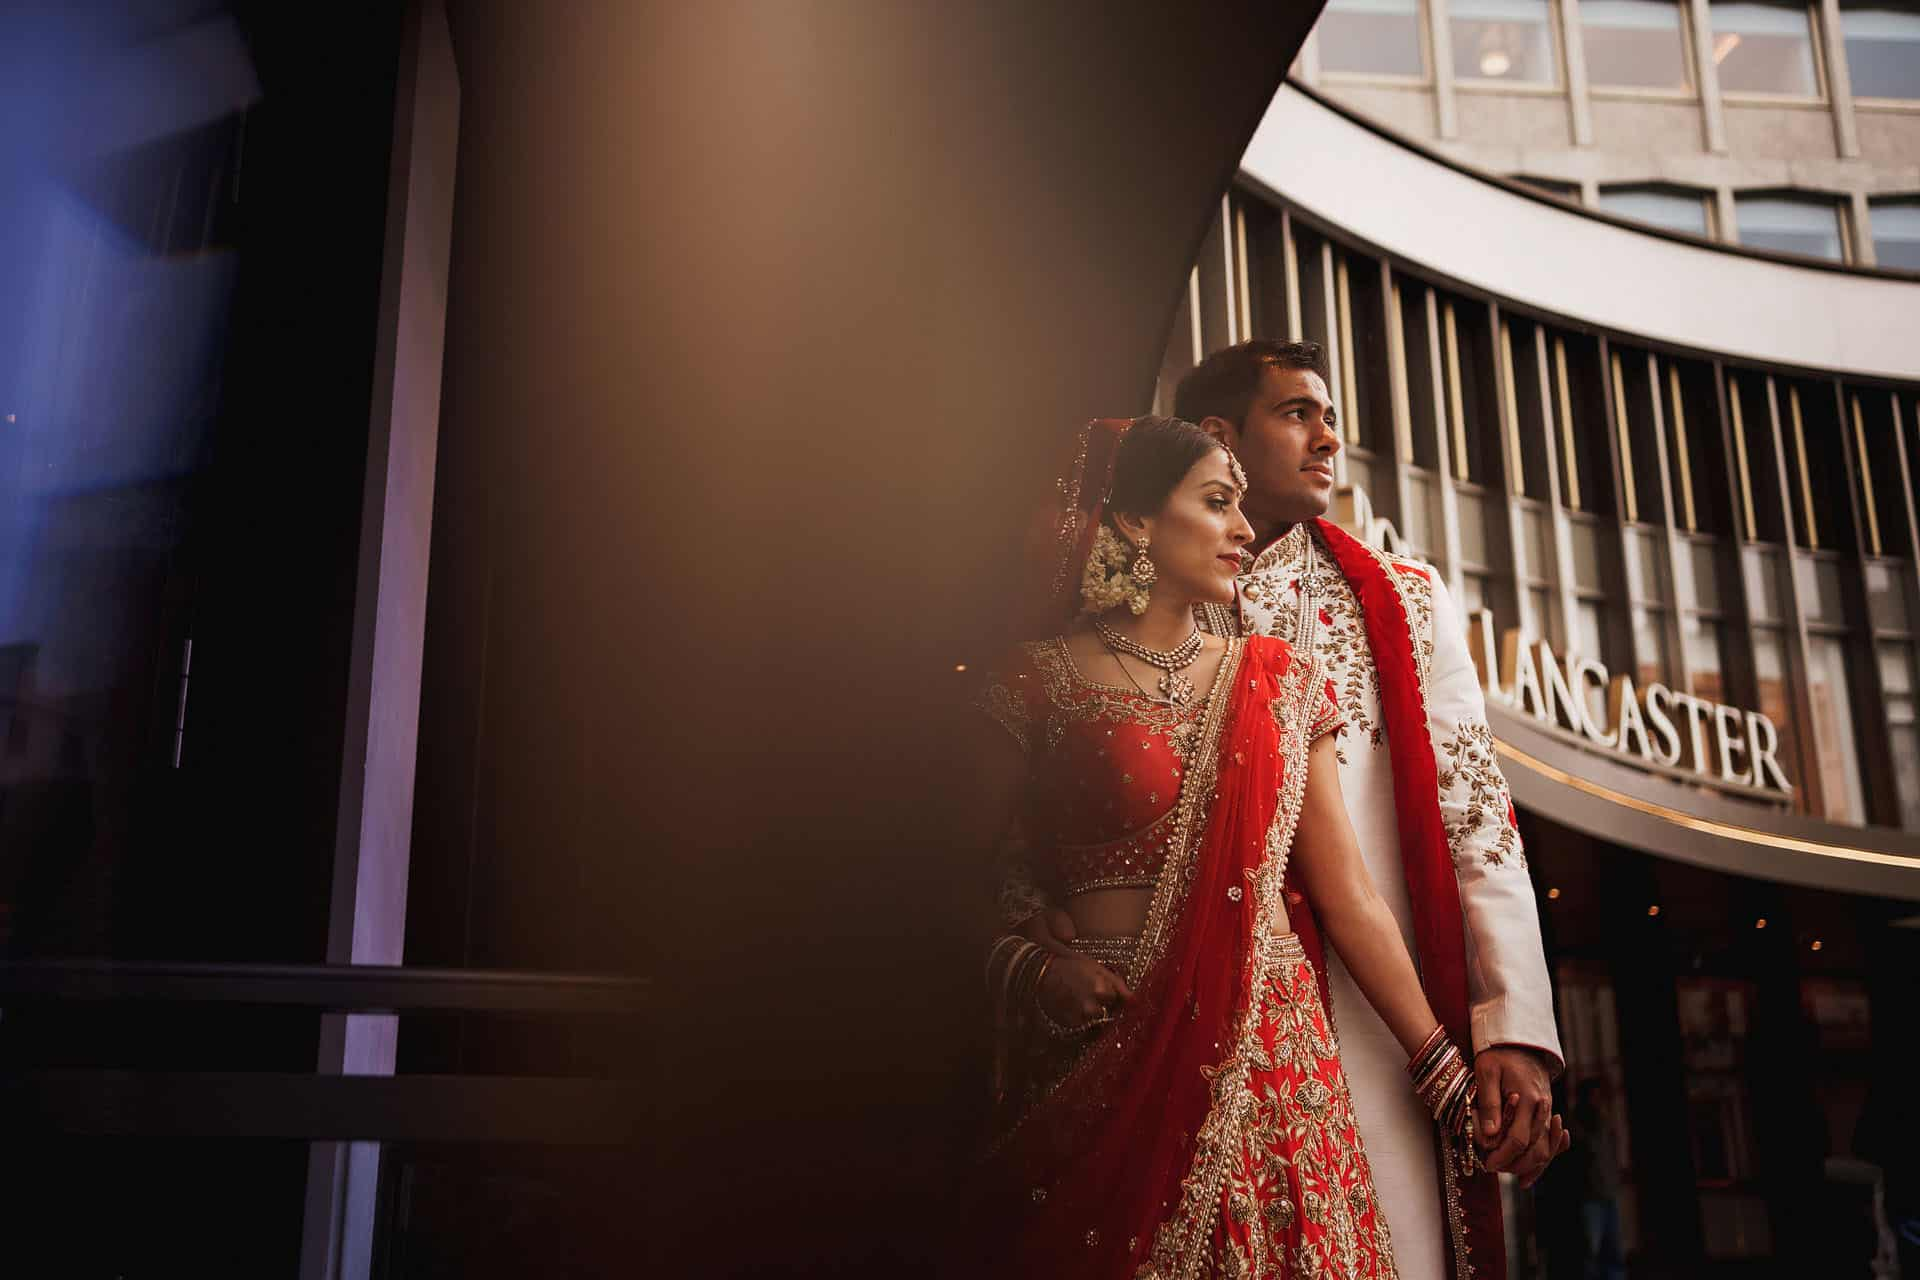 royal lancaster hindu wedding